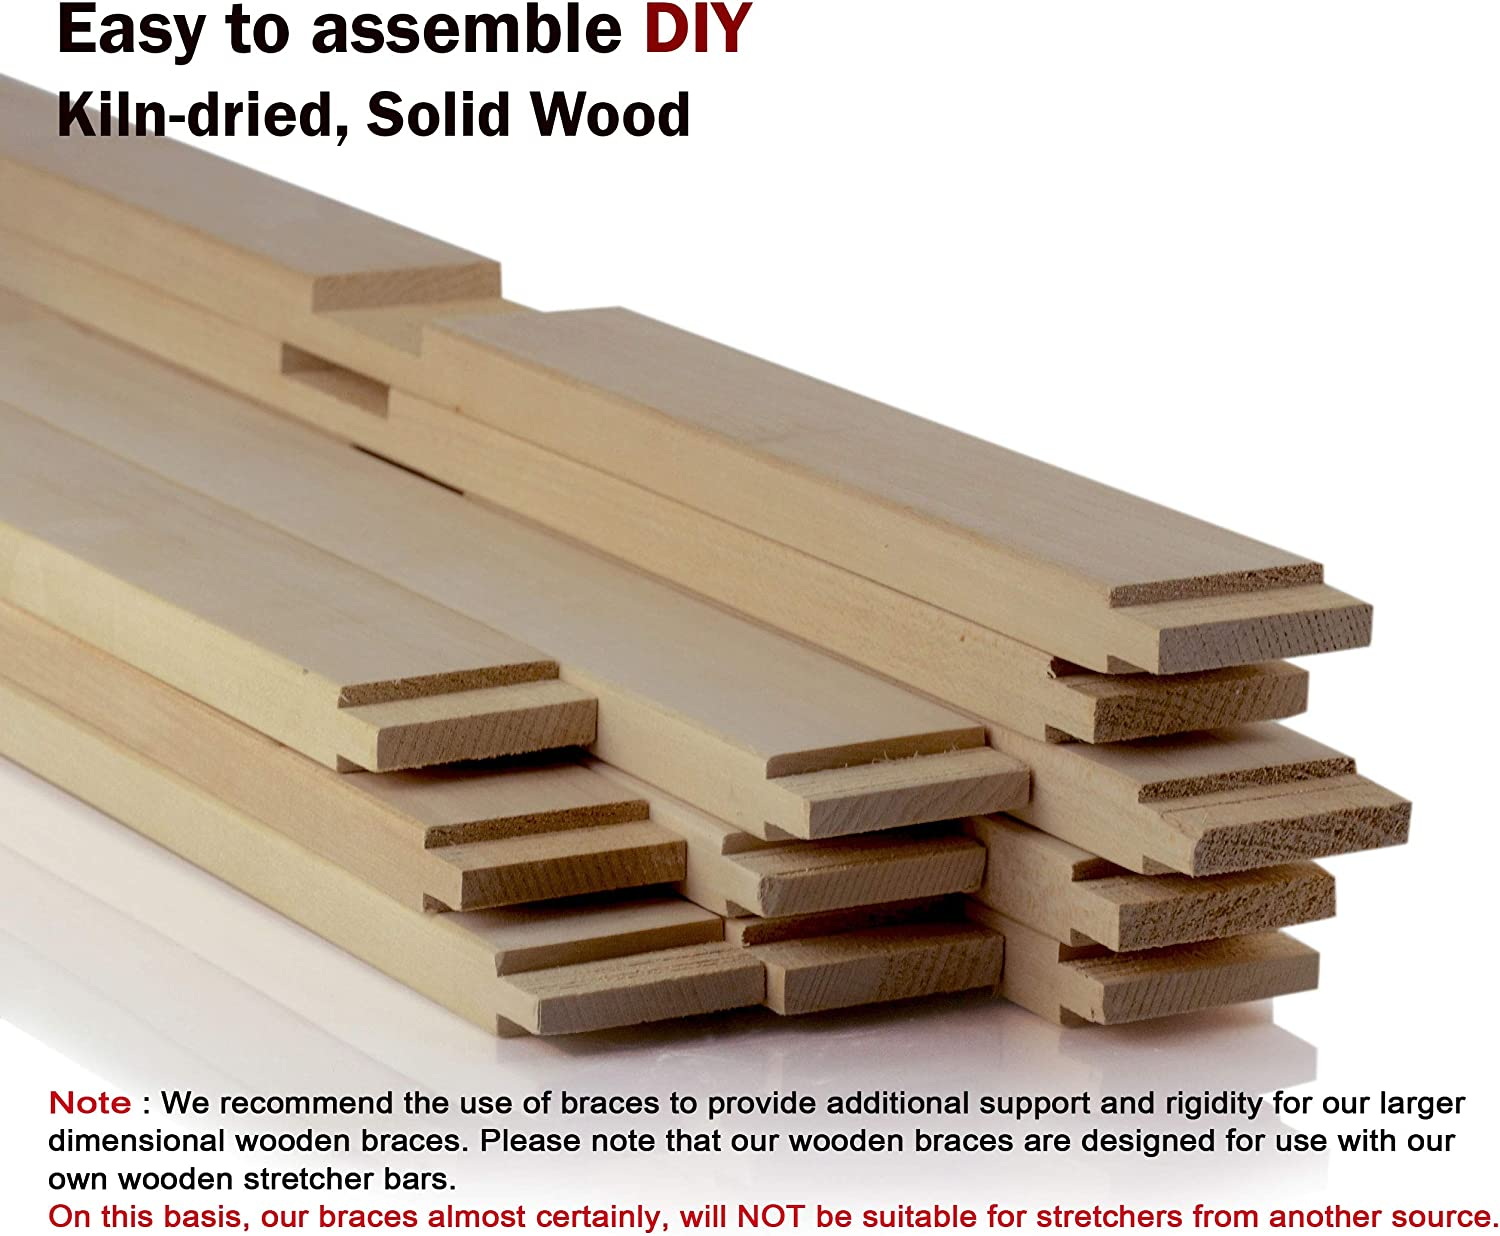 05.5 for 08 1Pcs DIY 5.5 to 69.5 in Length : Art Canvas Frames Cross Braces for Wooden Stretcher Bars//Stretching Strips